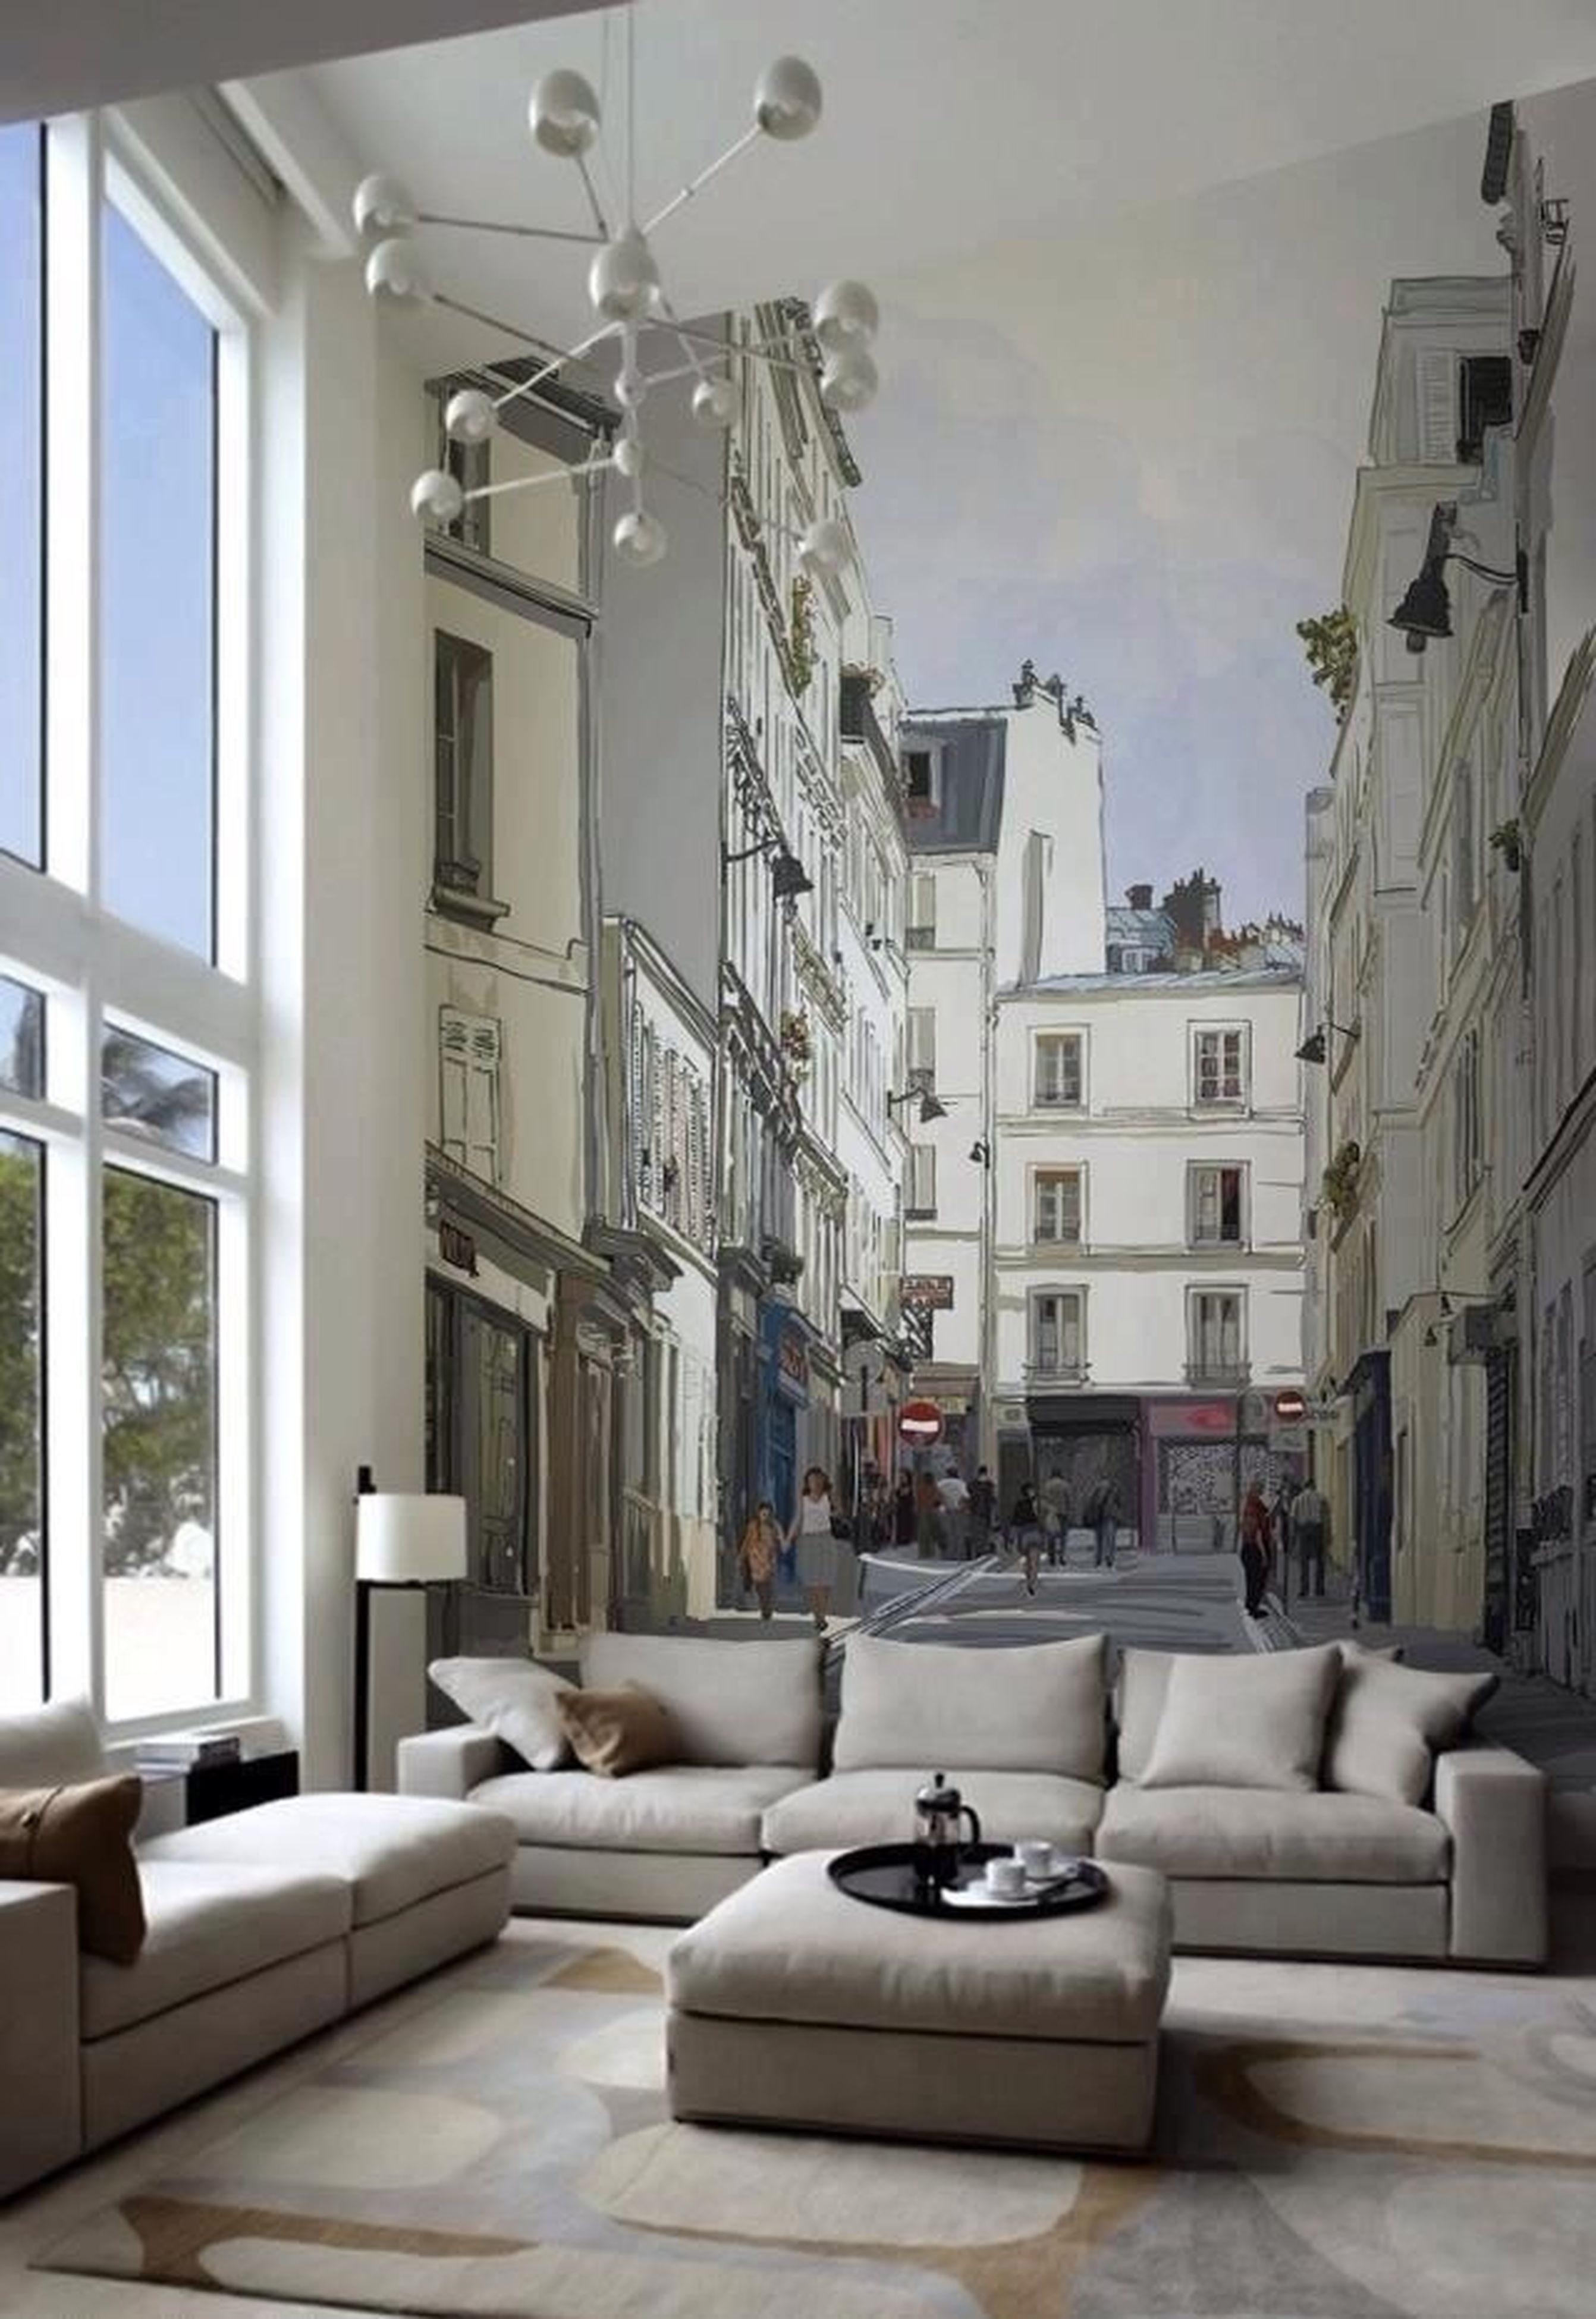 architecture, built structure, building exterior, window, indoors, chair, sunlight, residential structure, table, house, residential building, building, absence, day, empty, no people, lighting equipment, potted plant, city, home interior